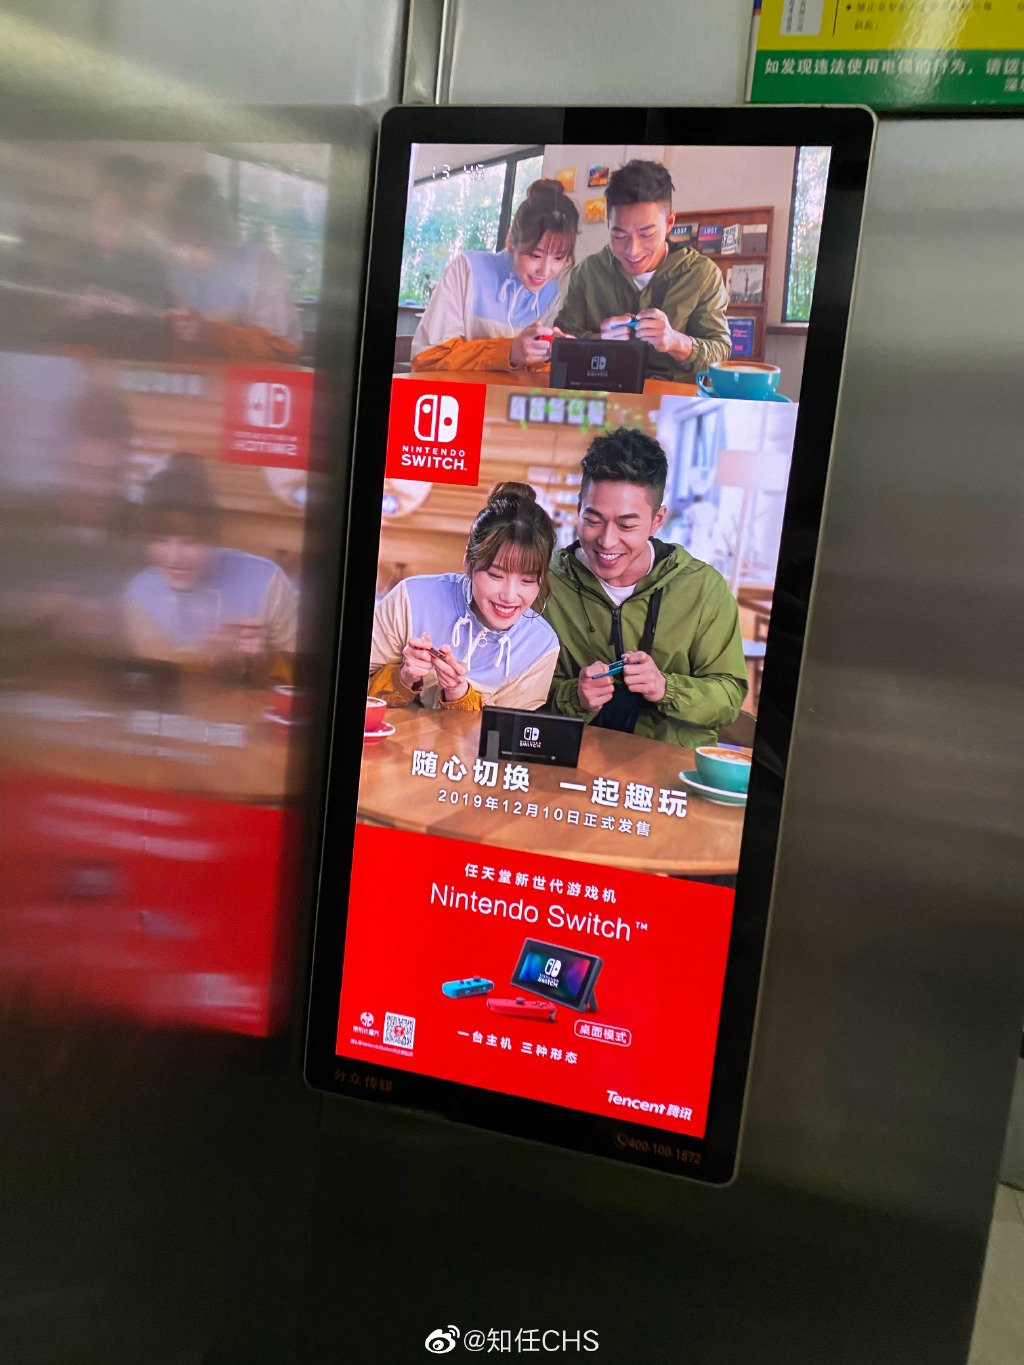 Nintendo Switch Advertisements And Demo Units Pop Up In China Nintendosoup